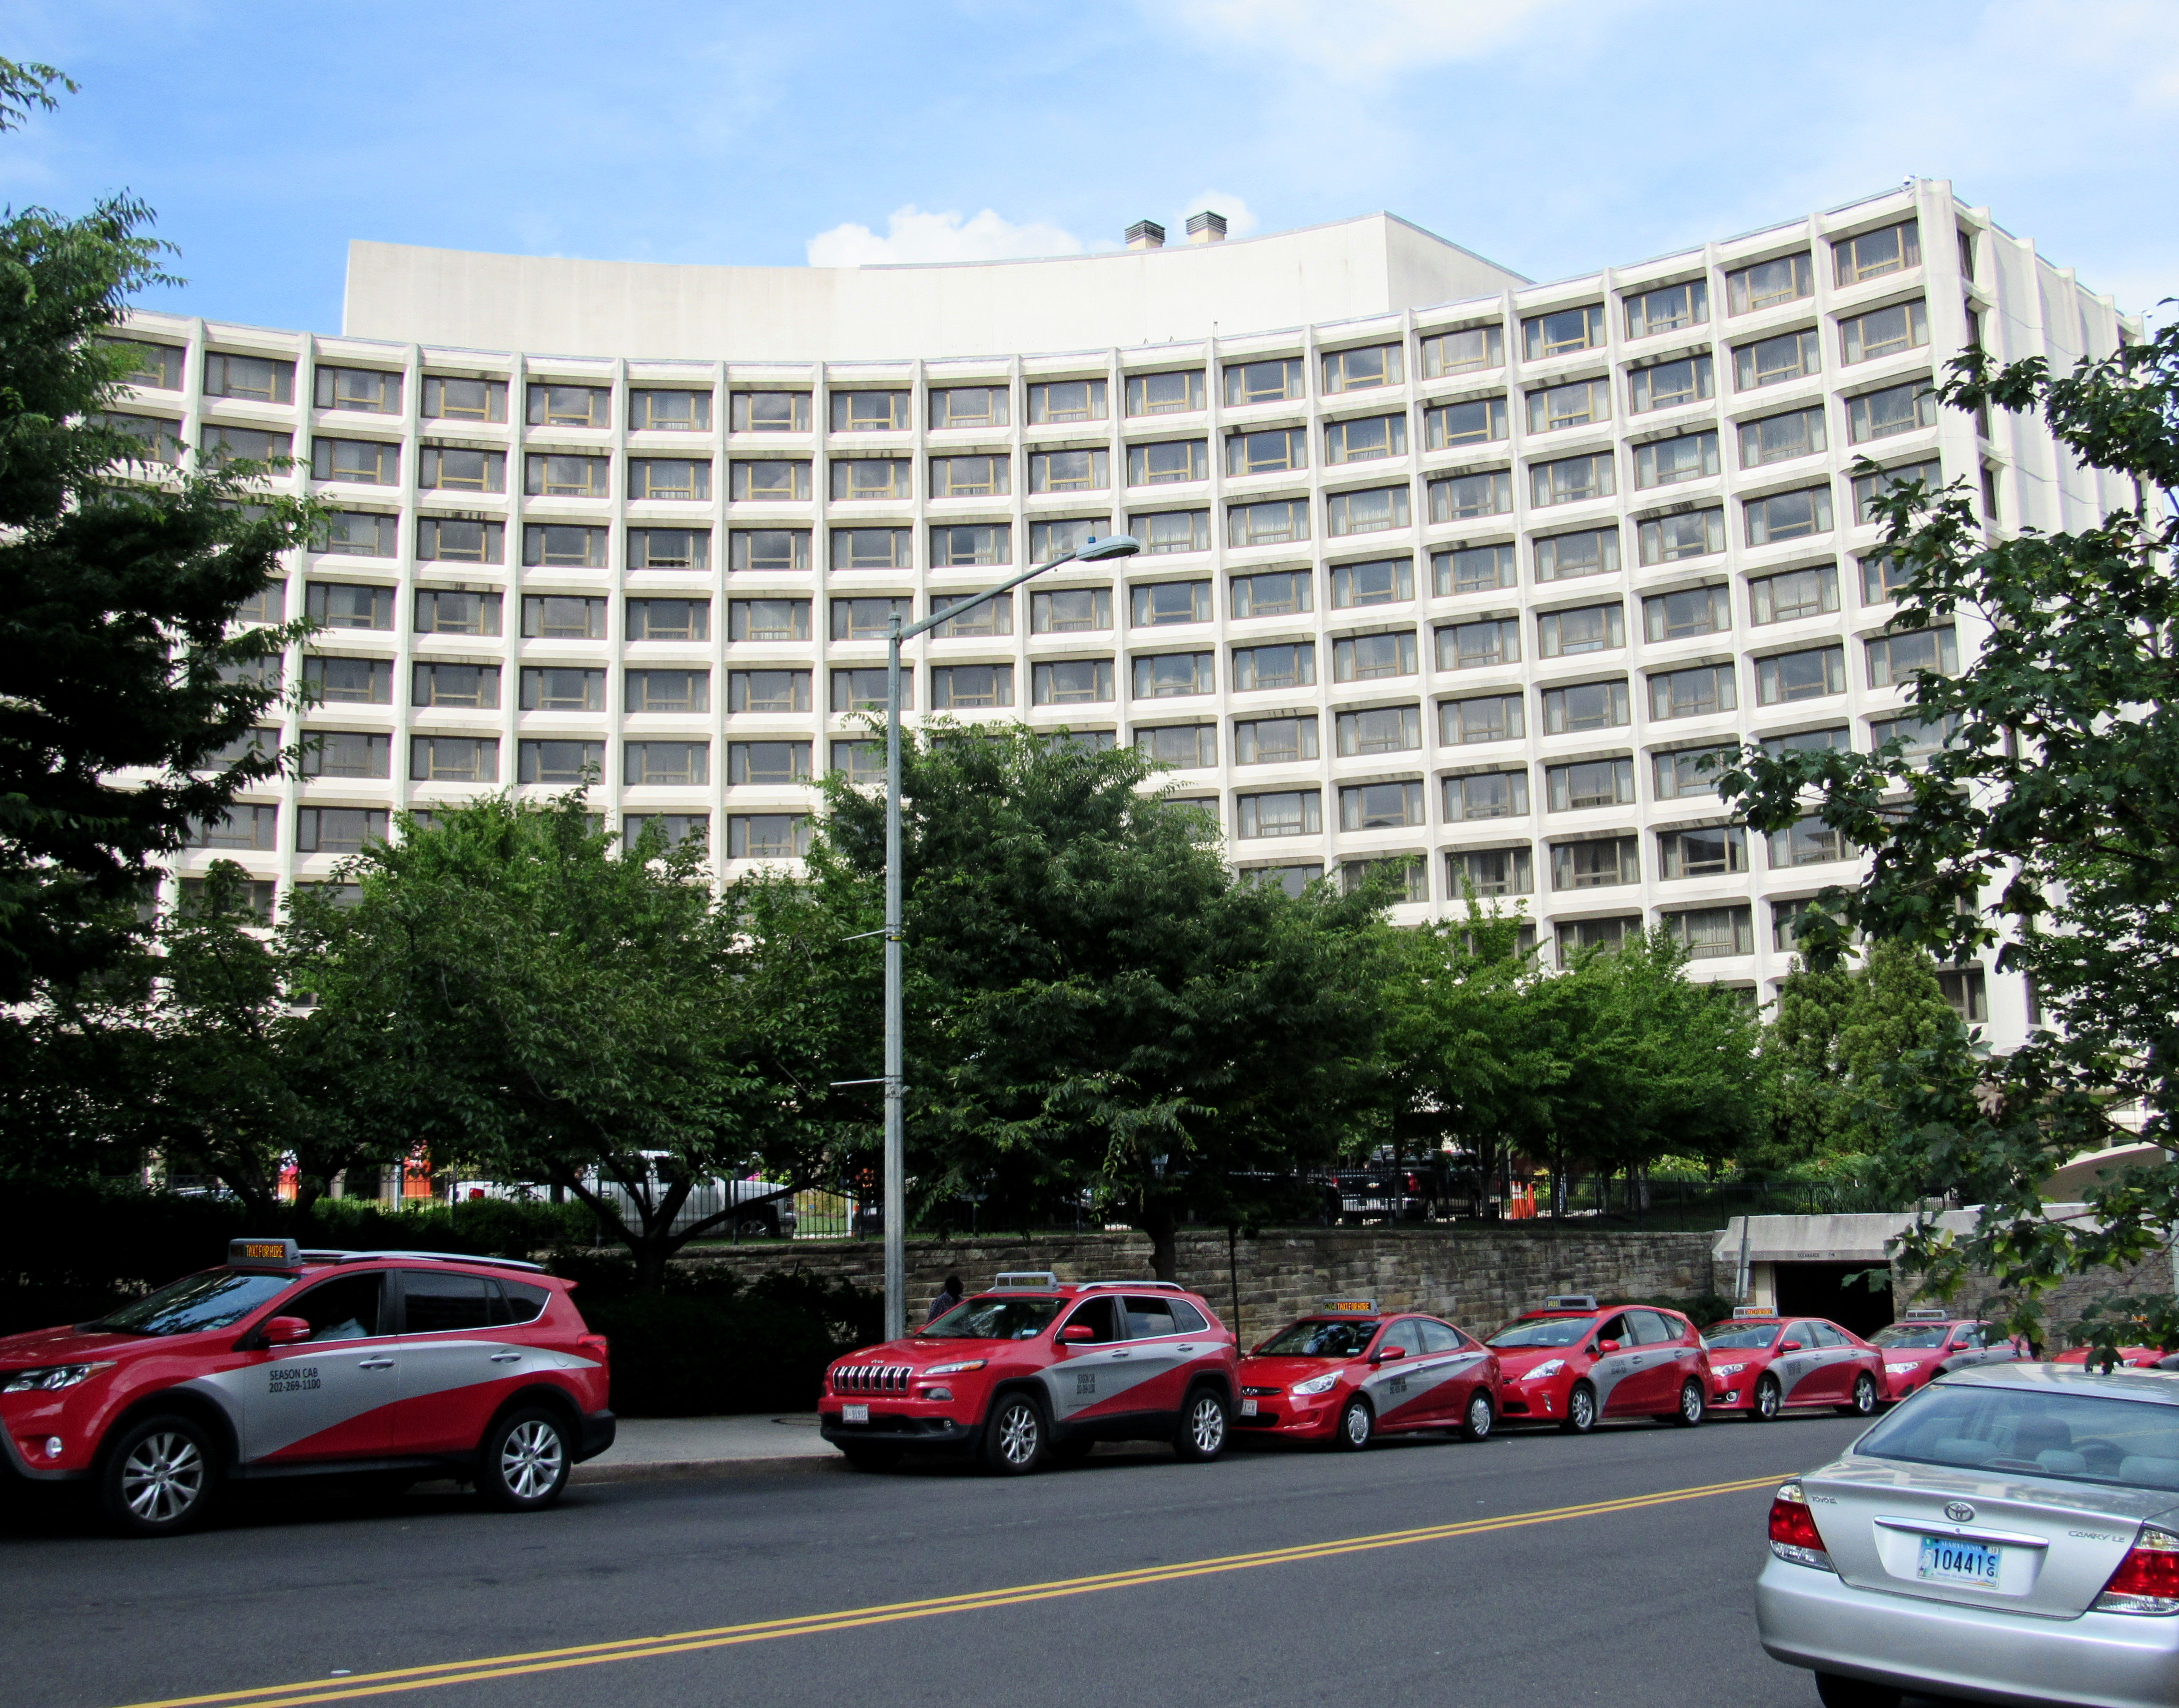 Taxicabs line up near the Hilton Hotel in the Dupont Circle neighborhood, Washington, D.C. (Photo: Shutterstock.com)